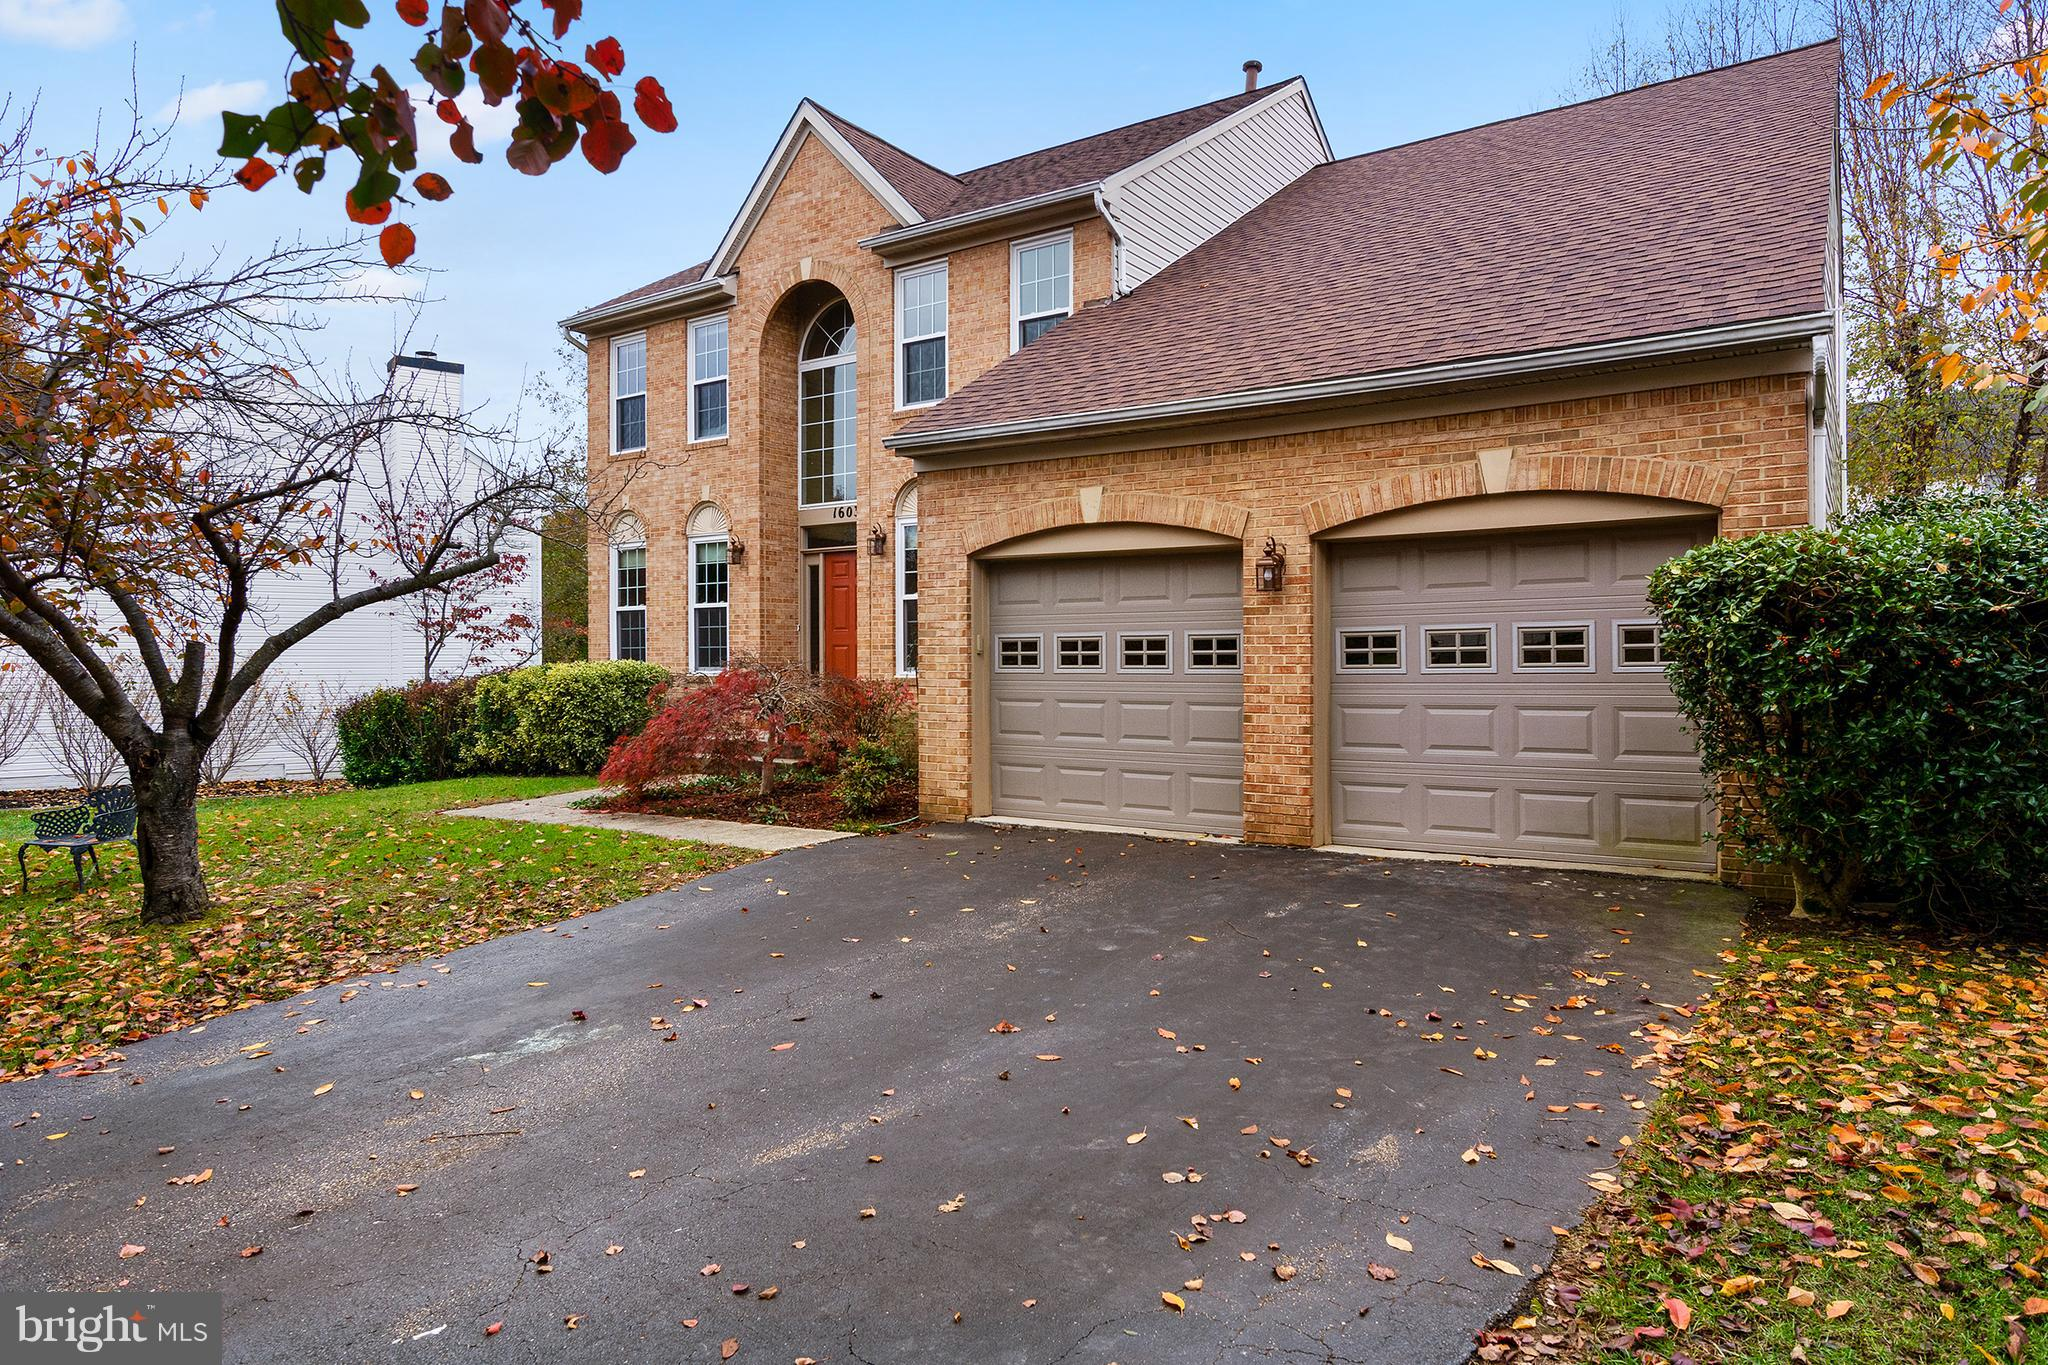 1603 TOBYS COURT, CROFTON, MD 21114